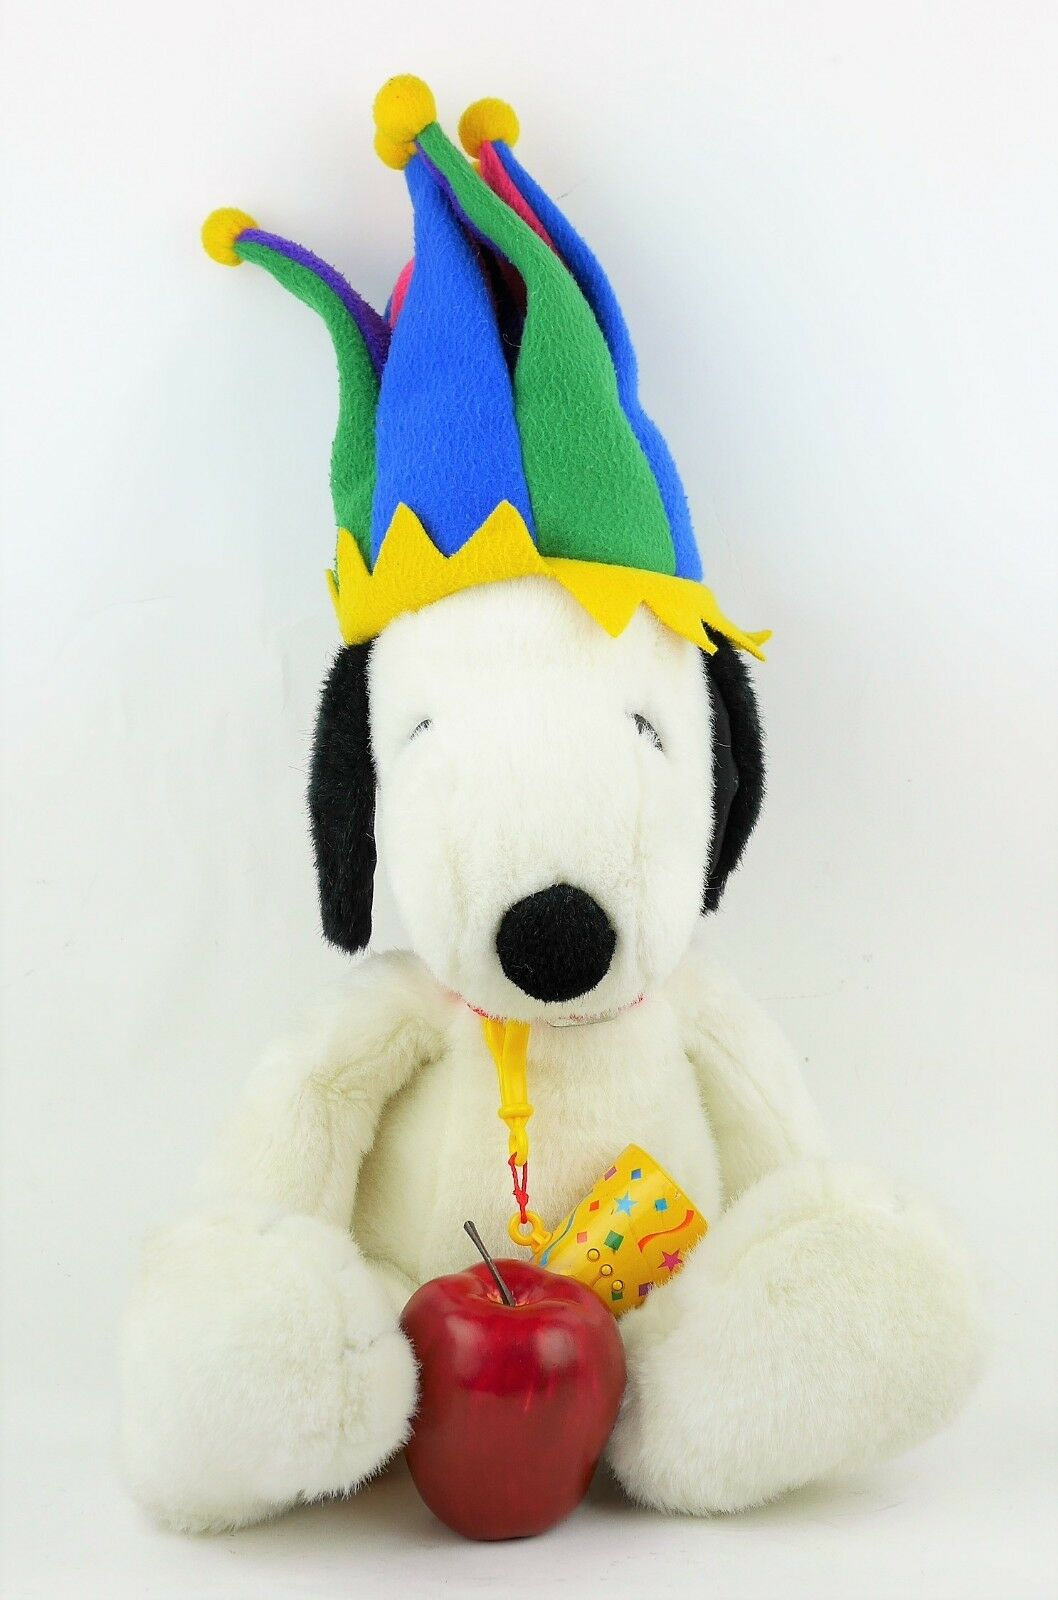 MACY'S 2000 MILLENNIUM SNOOPY COURT JESTER PLUSH PLUSH PLUSH DOLL 19  New Years Exclusive 6631c1